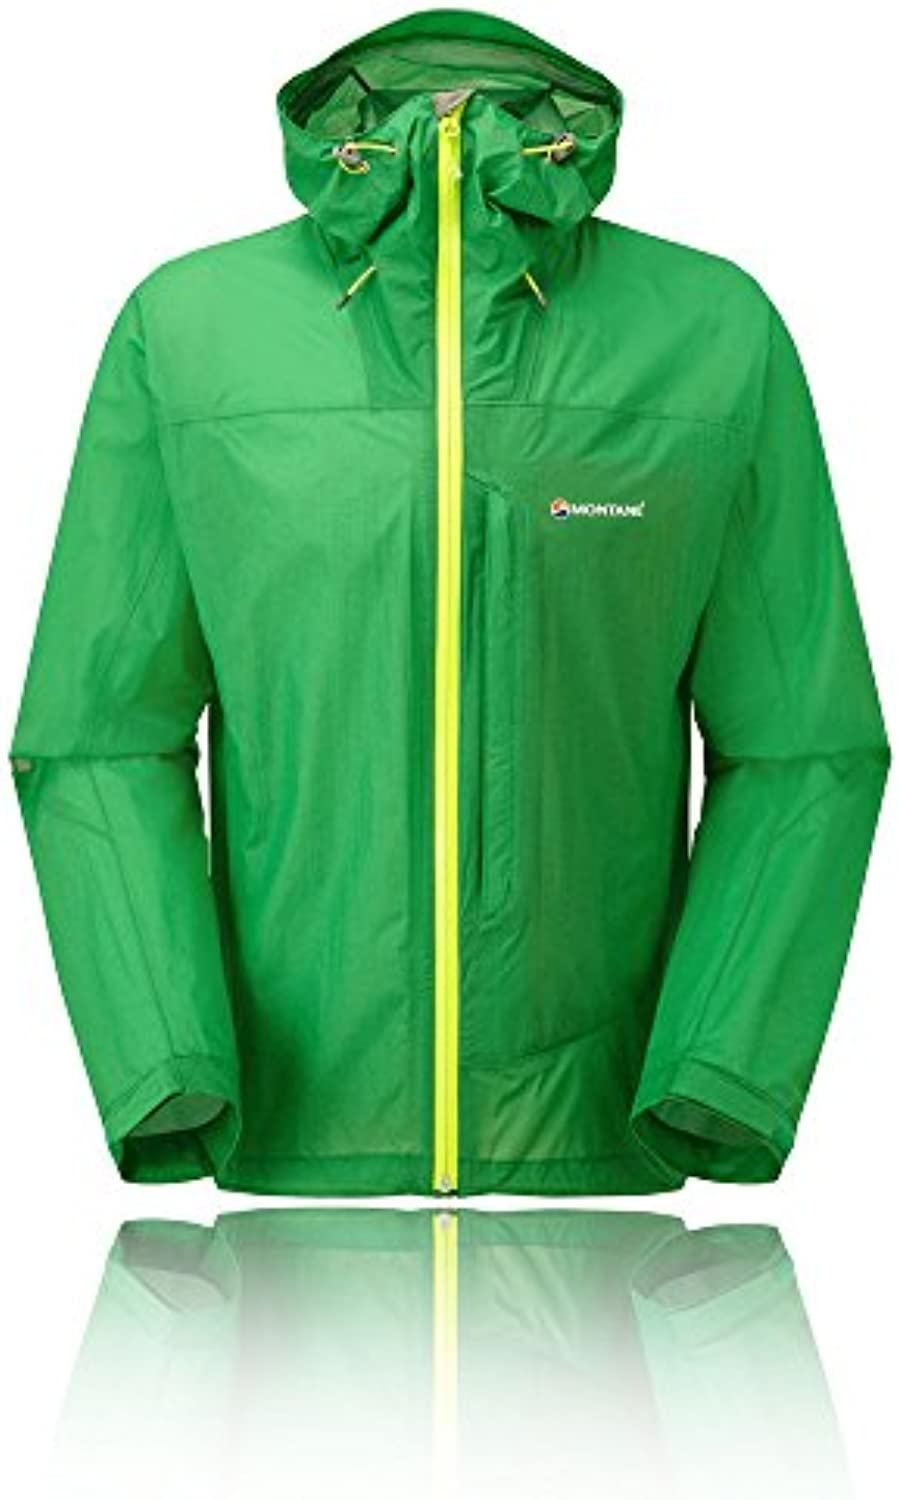 Montane Minimus Waterproof - Outdoor Giacca - Waterproof AW17 bae173 ... 1a55fbb8be9